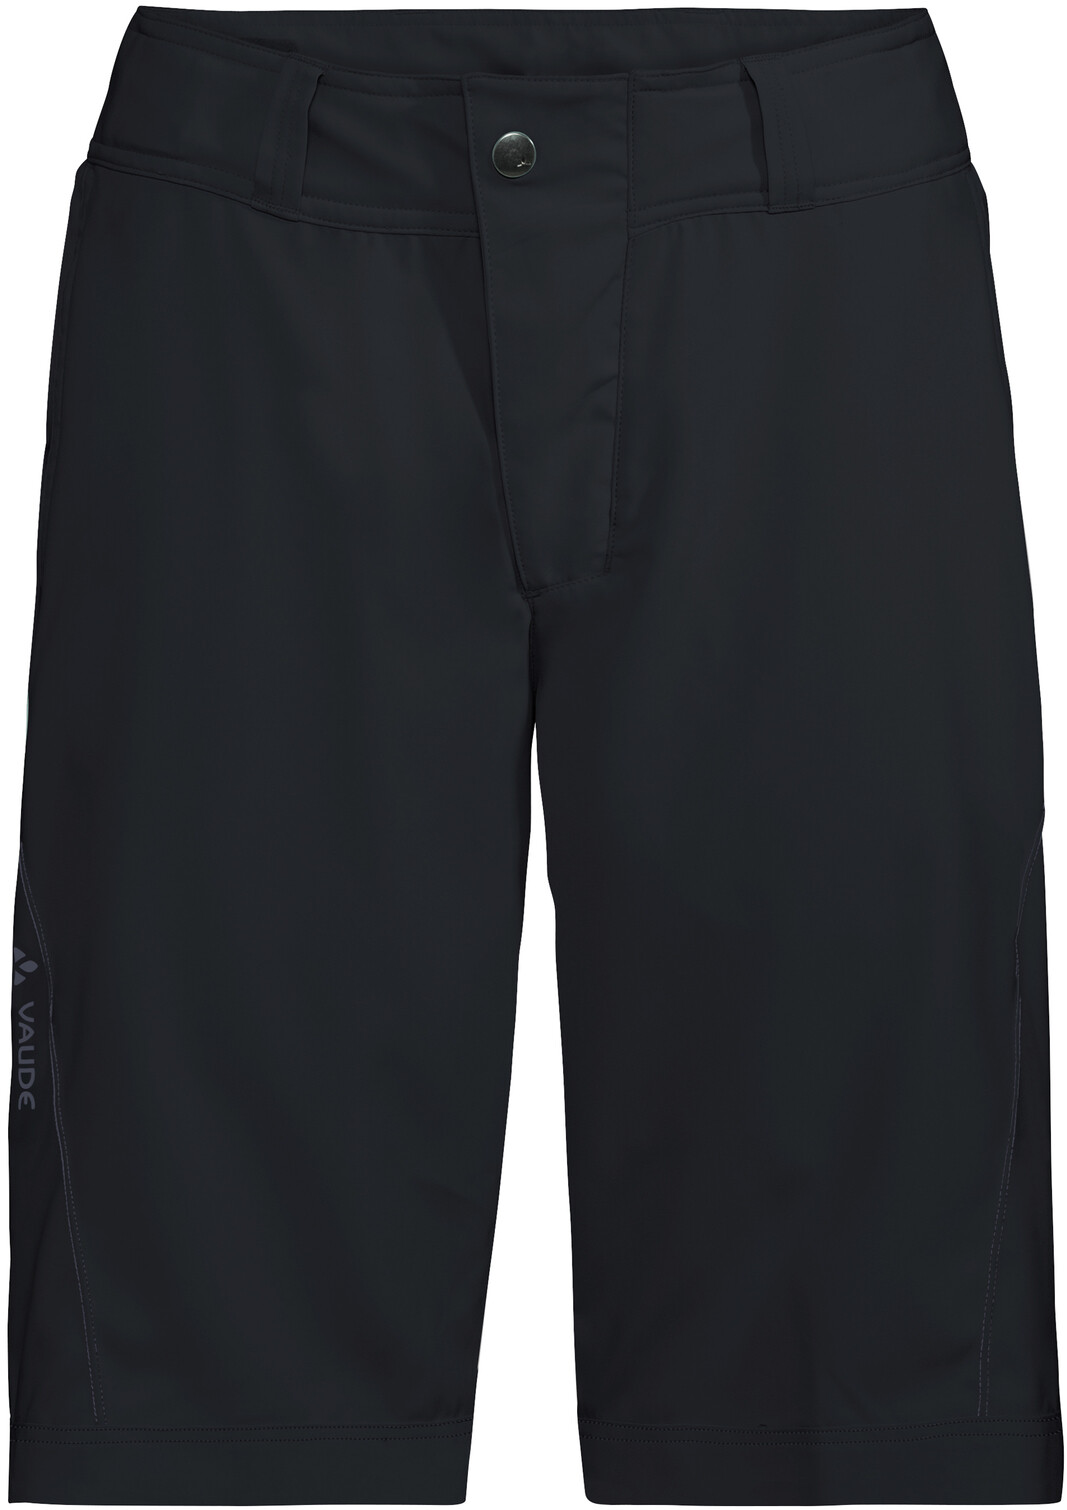 VAUDE Ledro Shorts Damer, black (2019) | Trousers